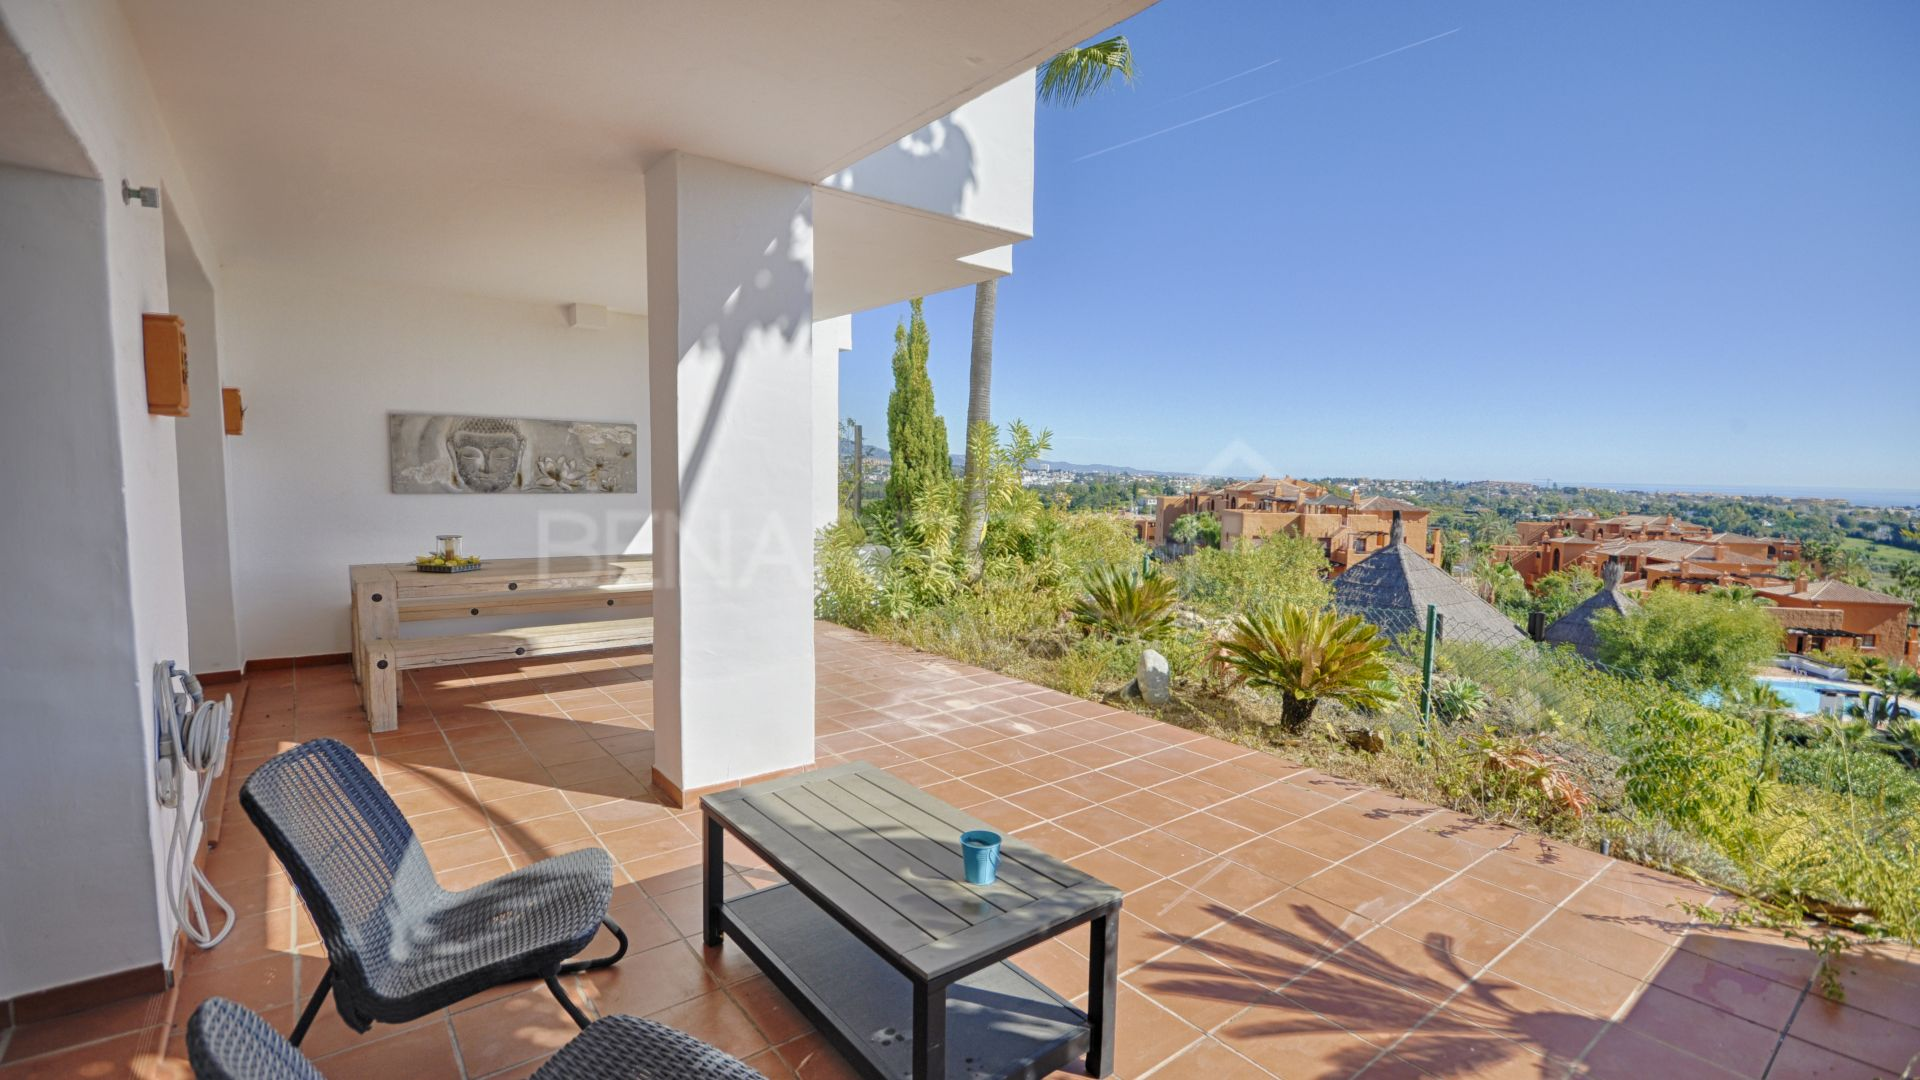 Apartment with views in Las Lomas del Marqués, Benahavis.